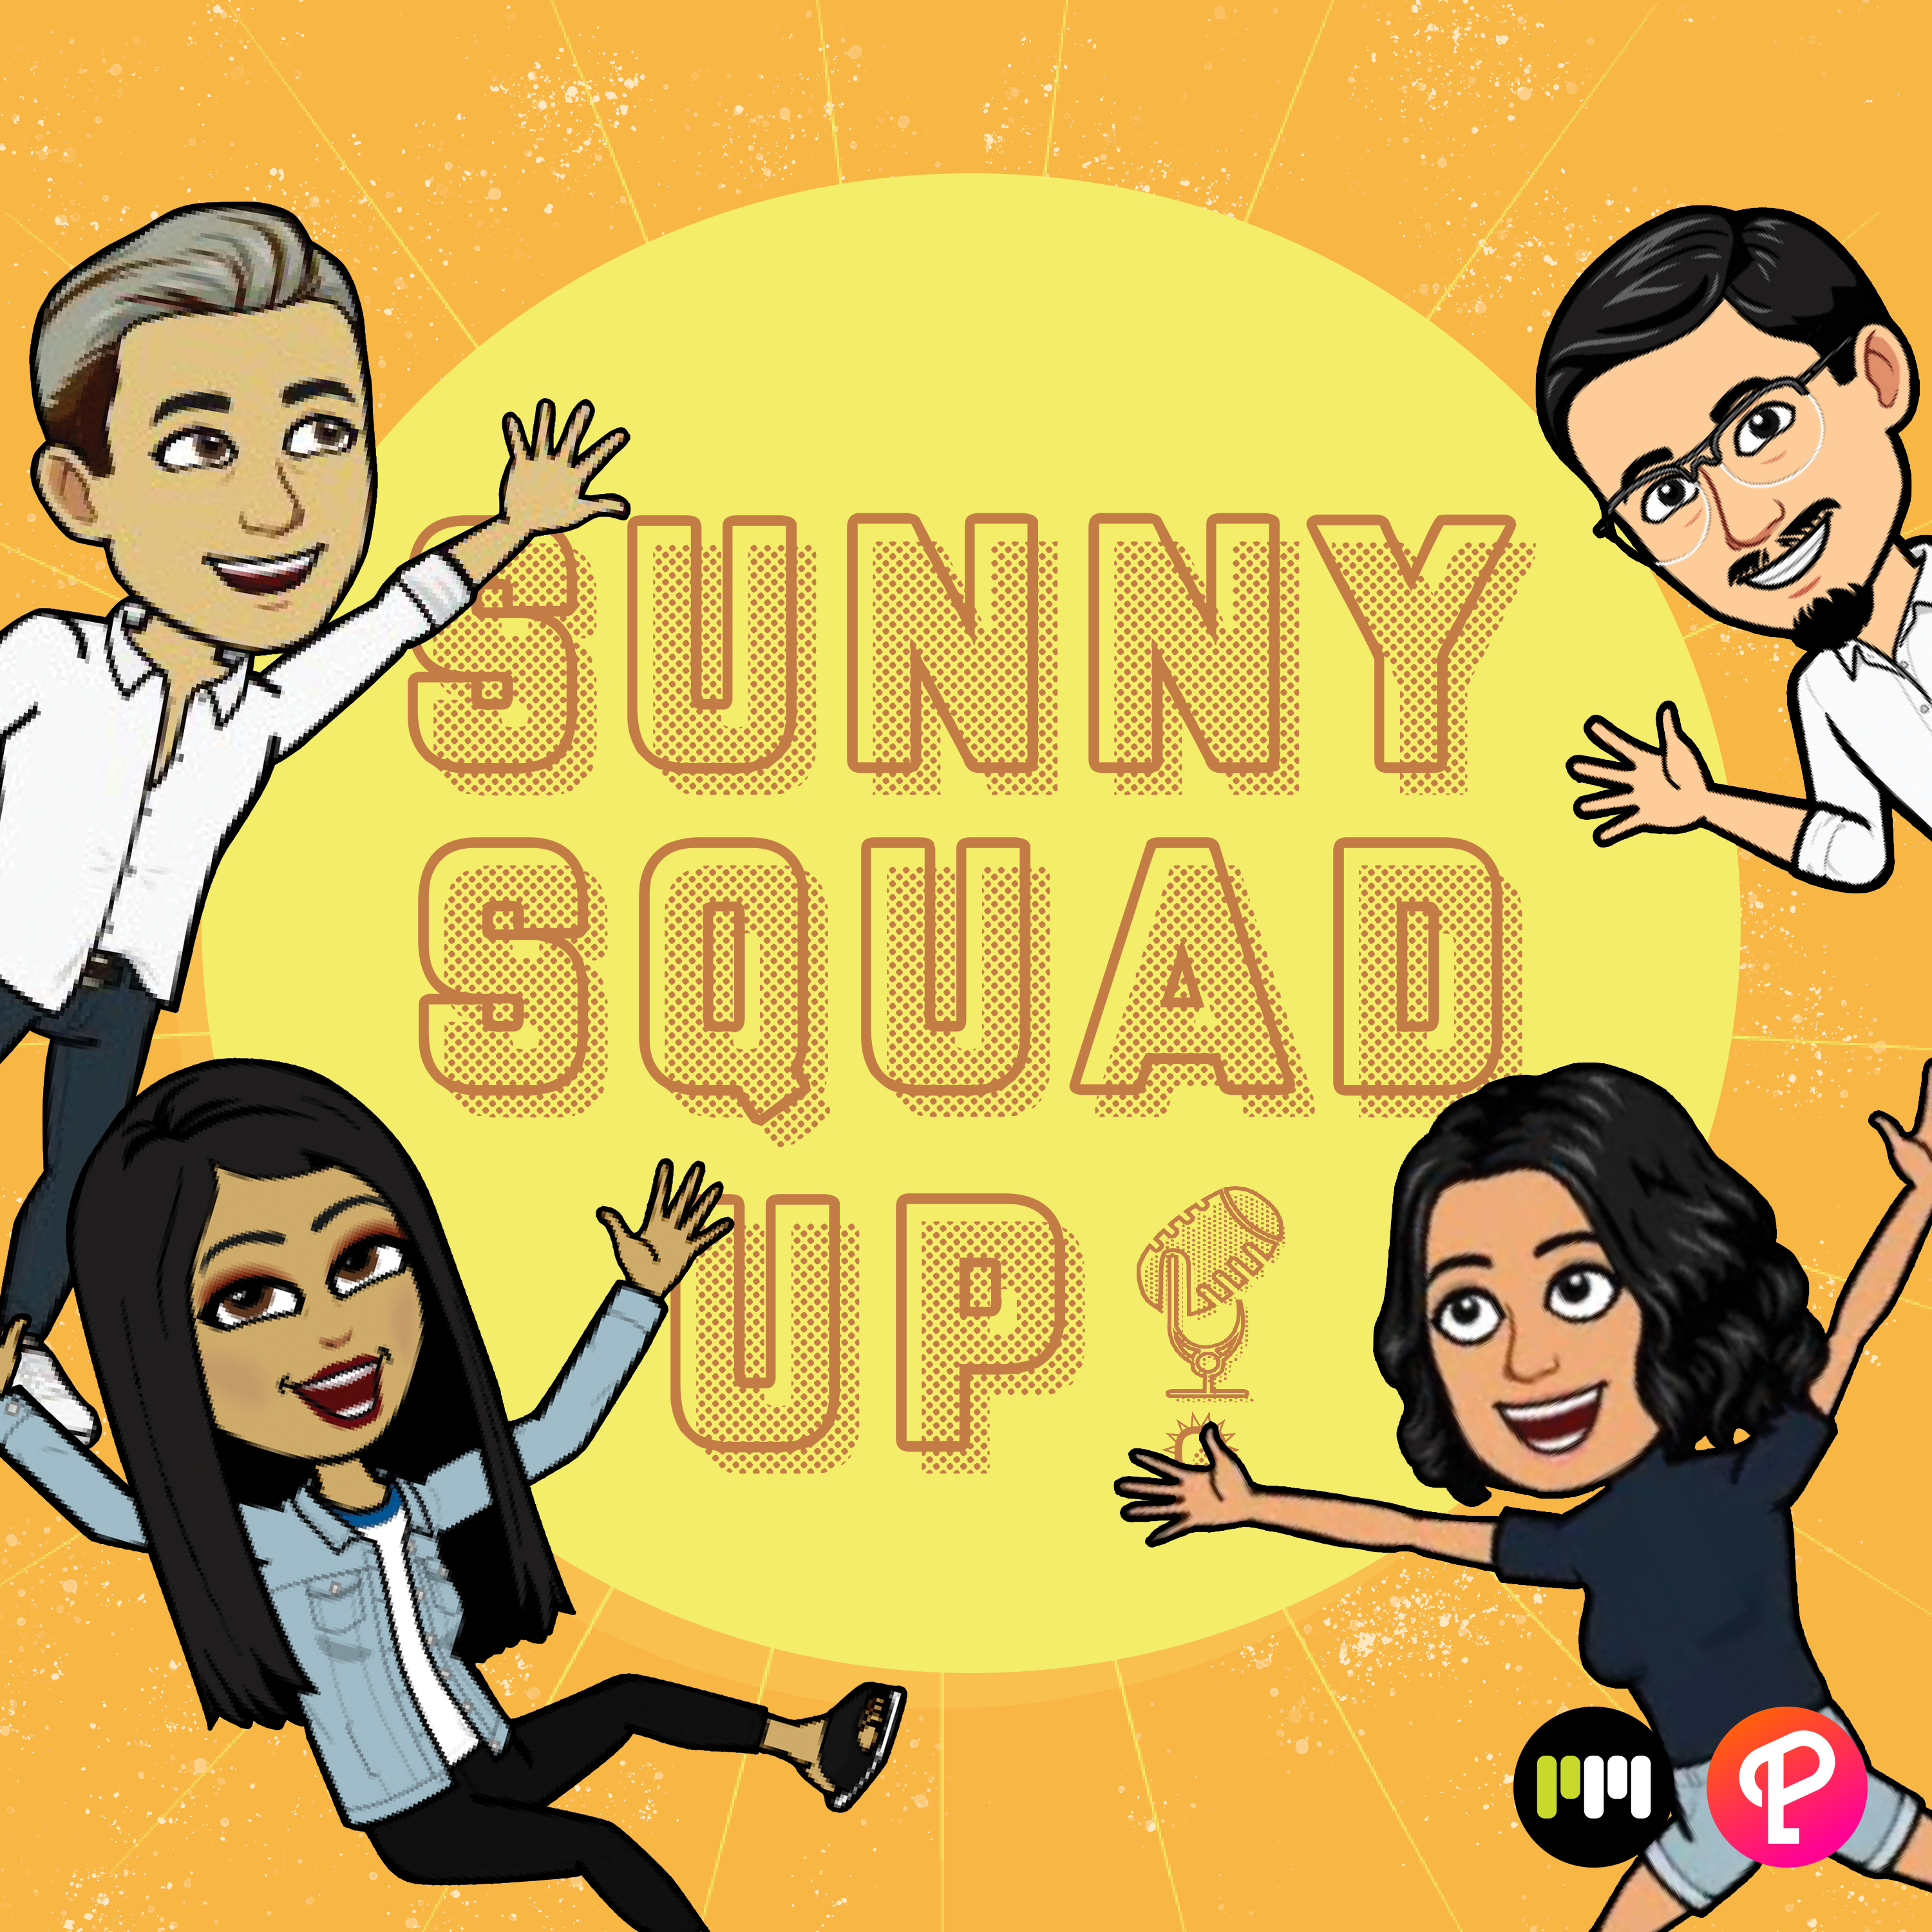 THE SUNNY SQUAD UP